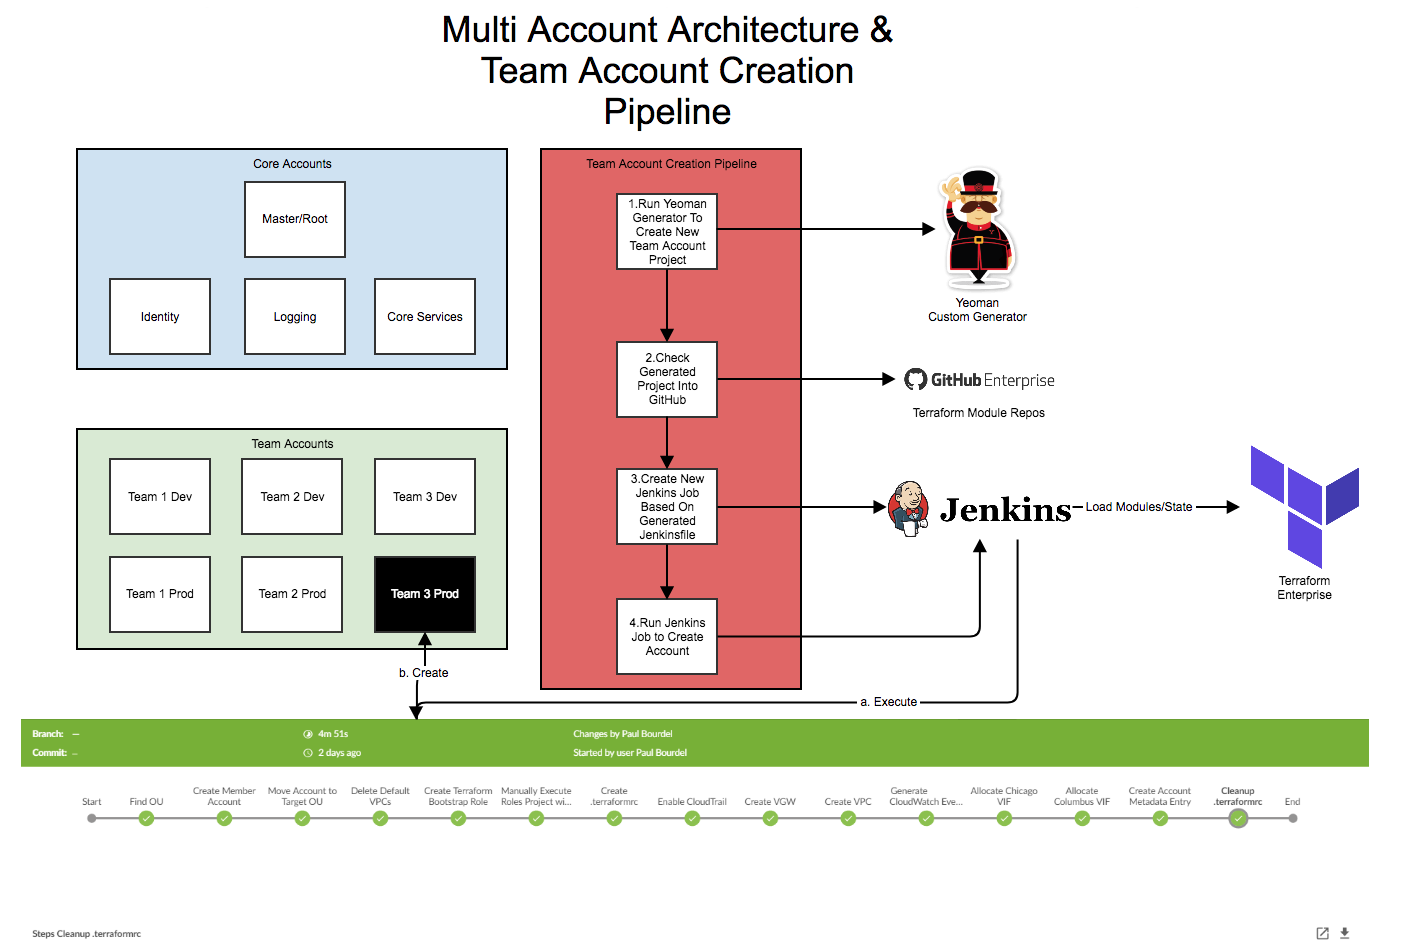 AWS Multi-Account Architecture with Terraform, Yeoman, and